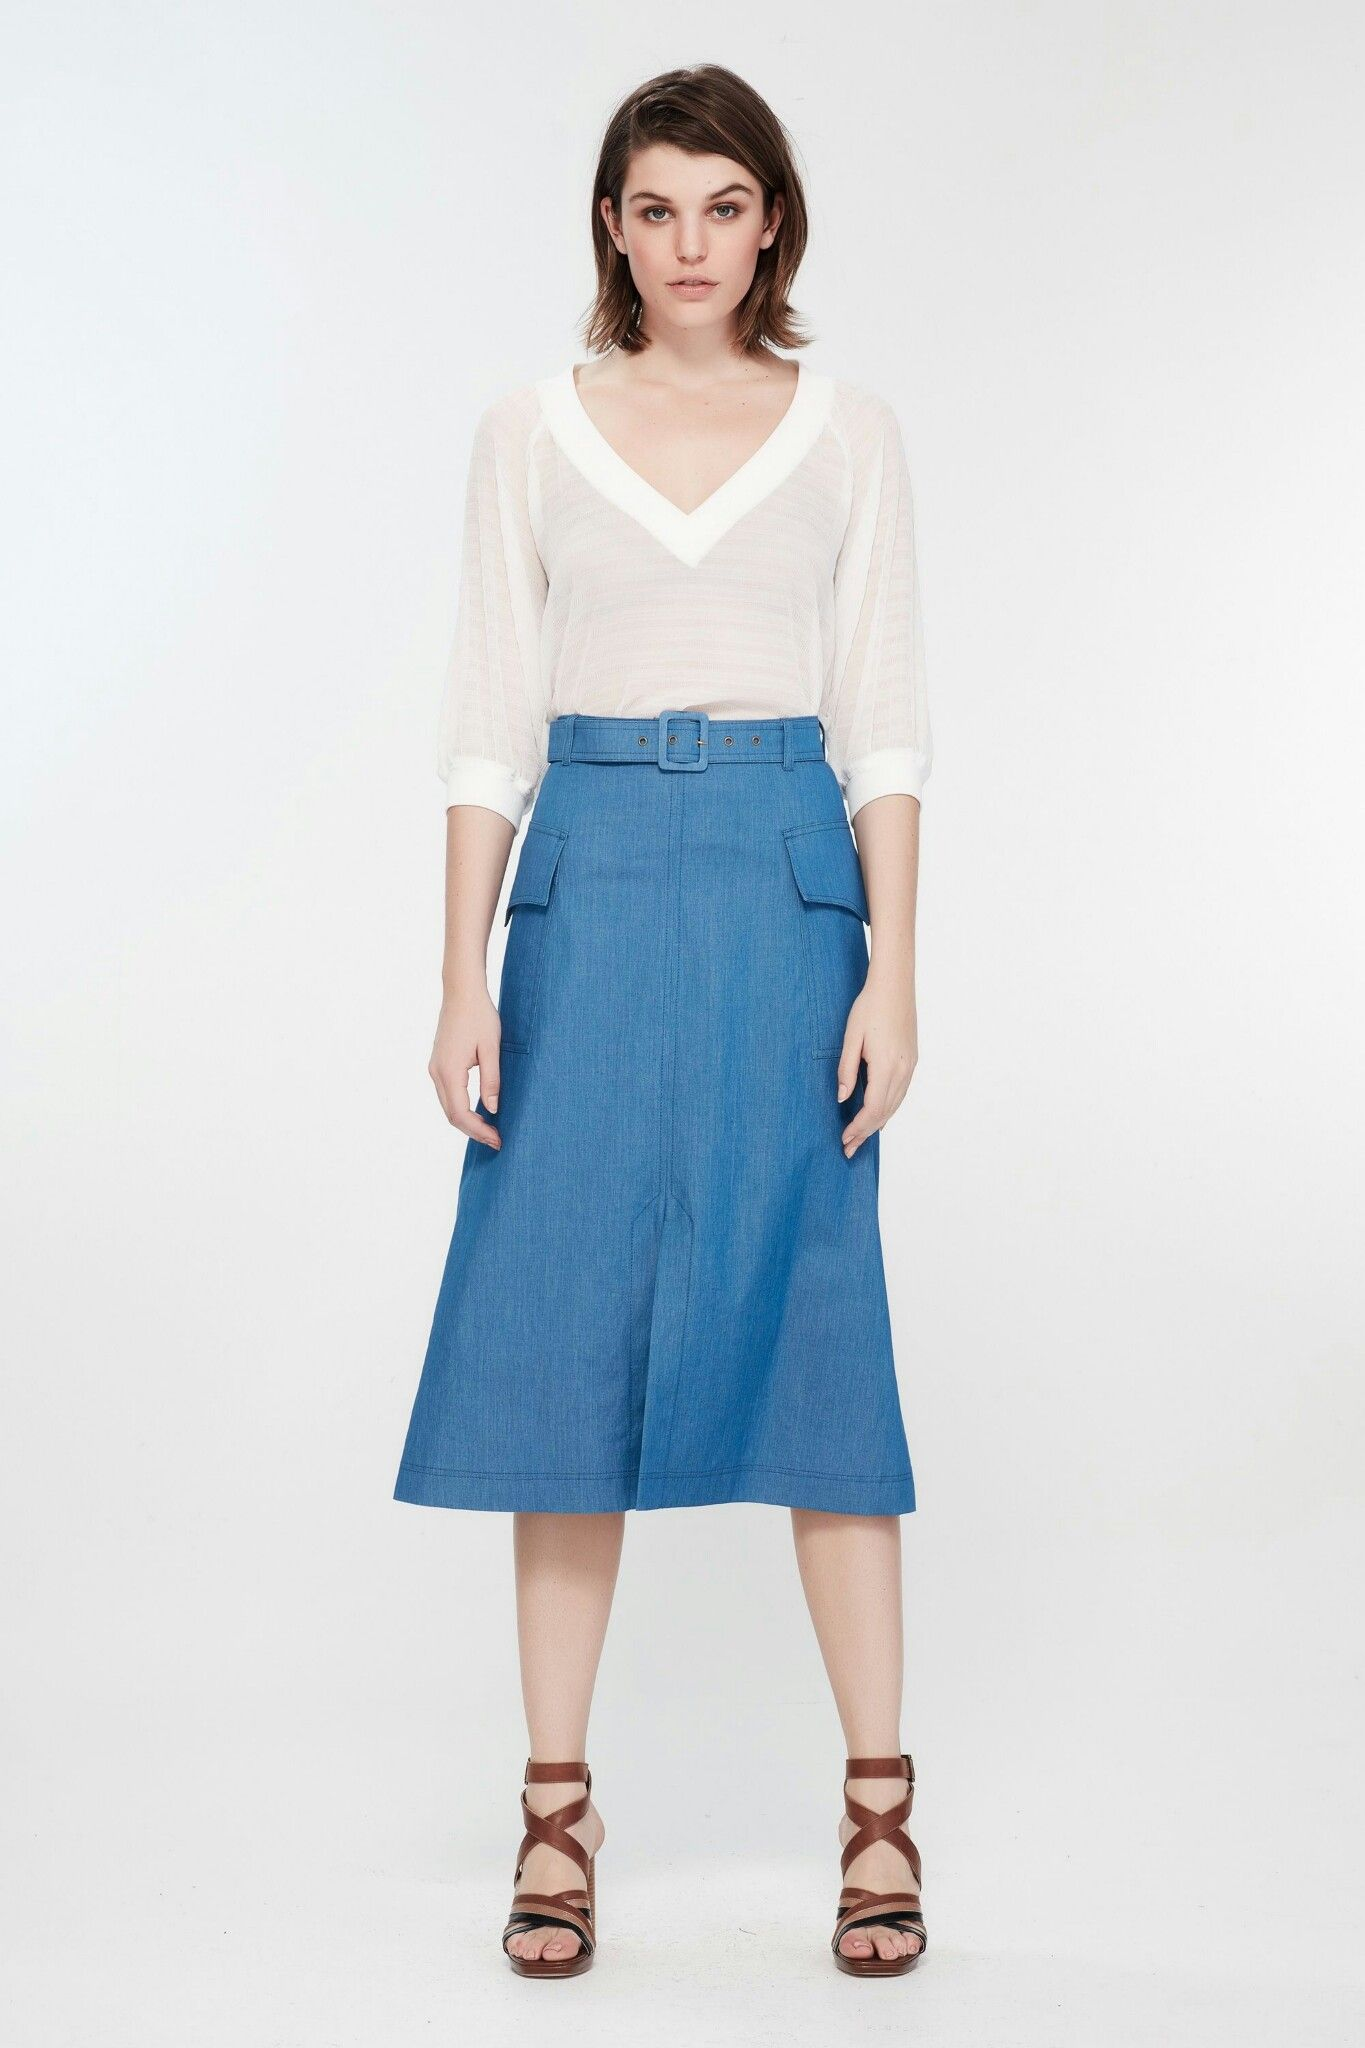 deb60ee52ebd6a Pin by Cecilia Goh on 衣服 | Skirts, High waisted skirt, Chambray